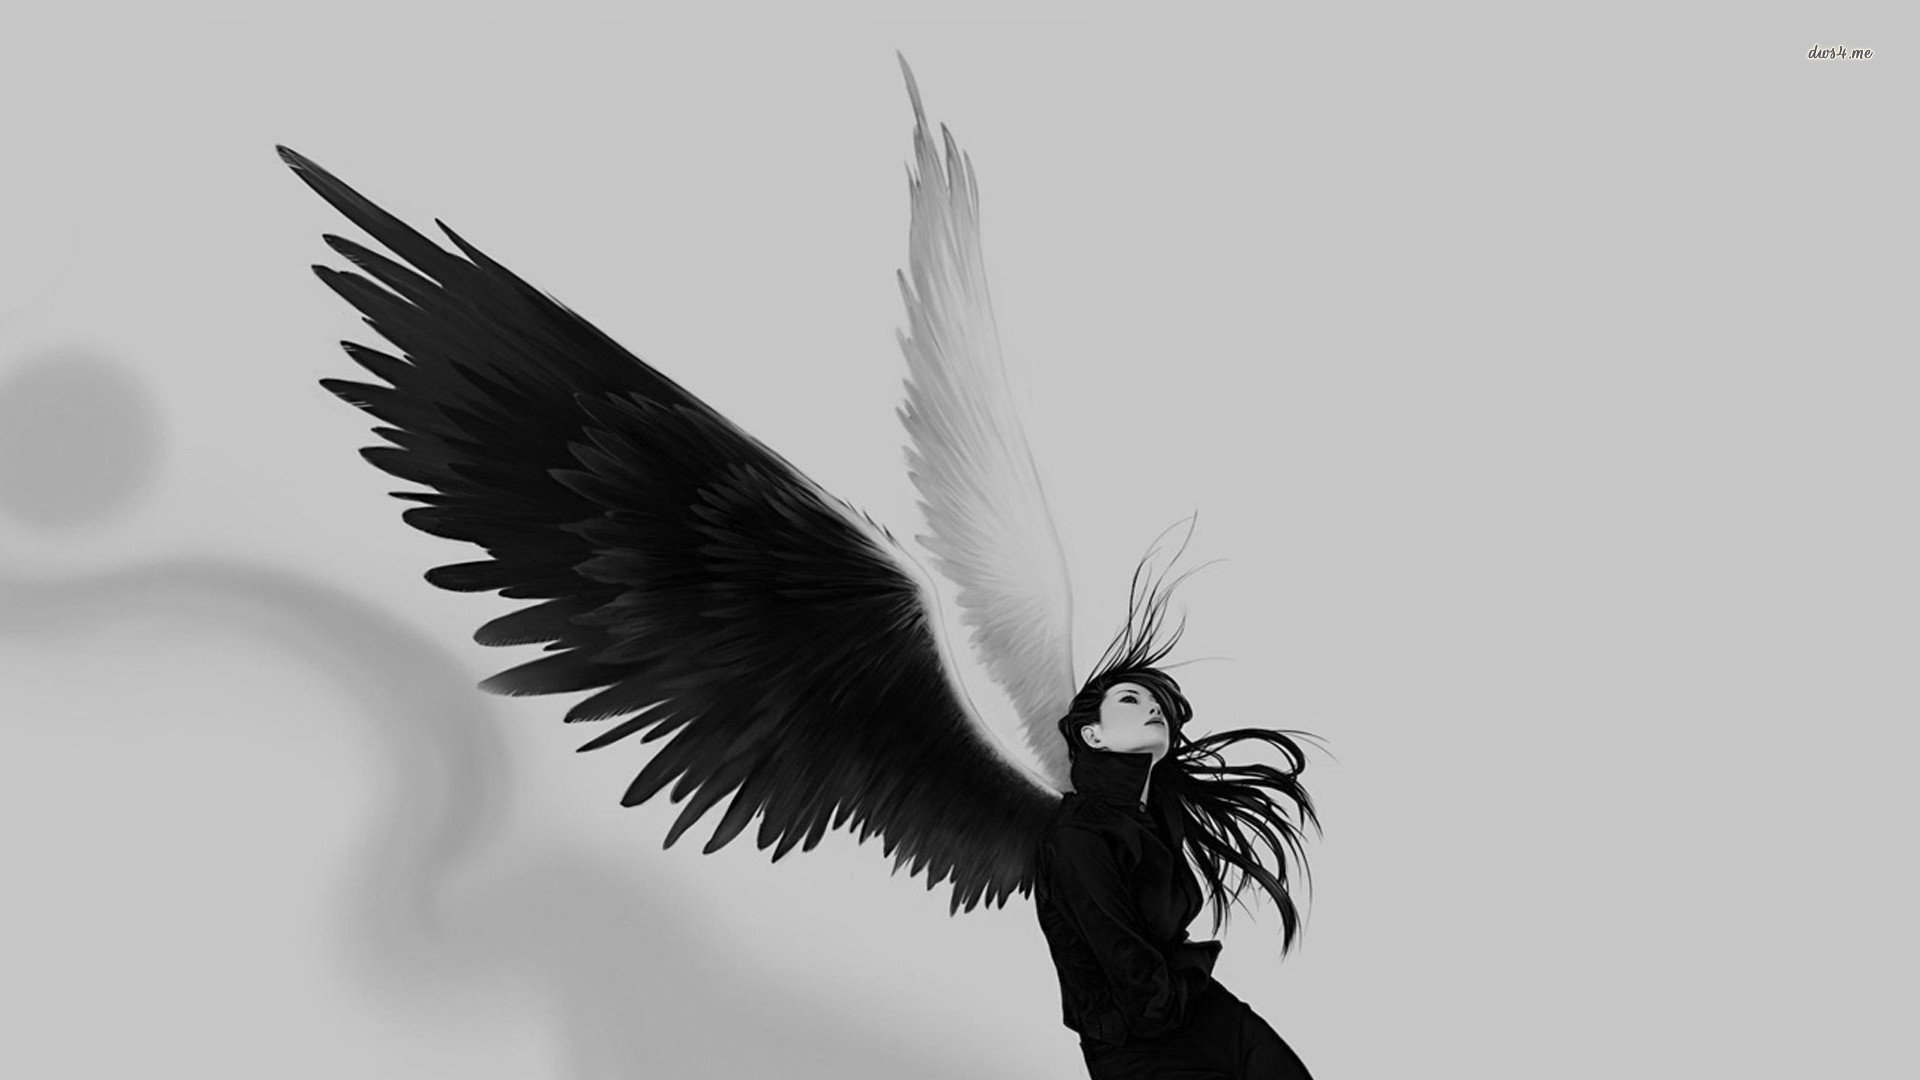 Free Download Wallpaper Angel Wings 81 Images 1920x1080 For Your